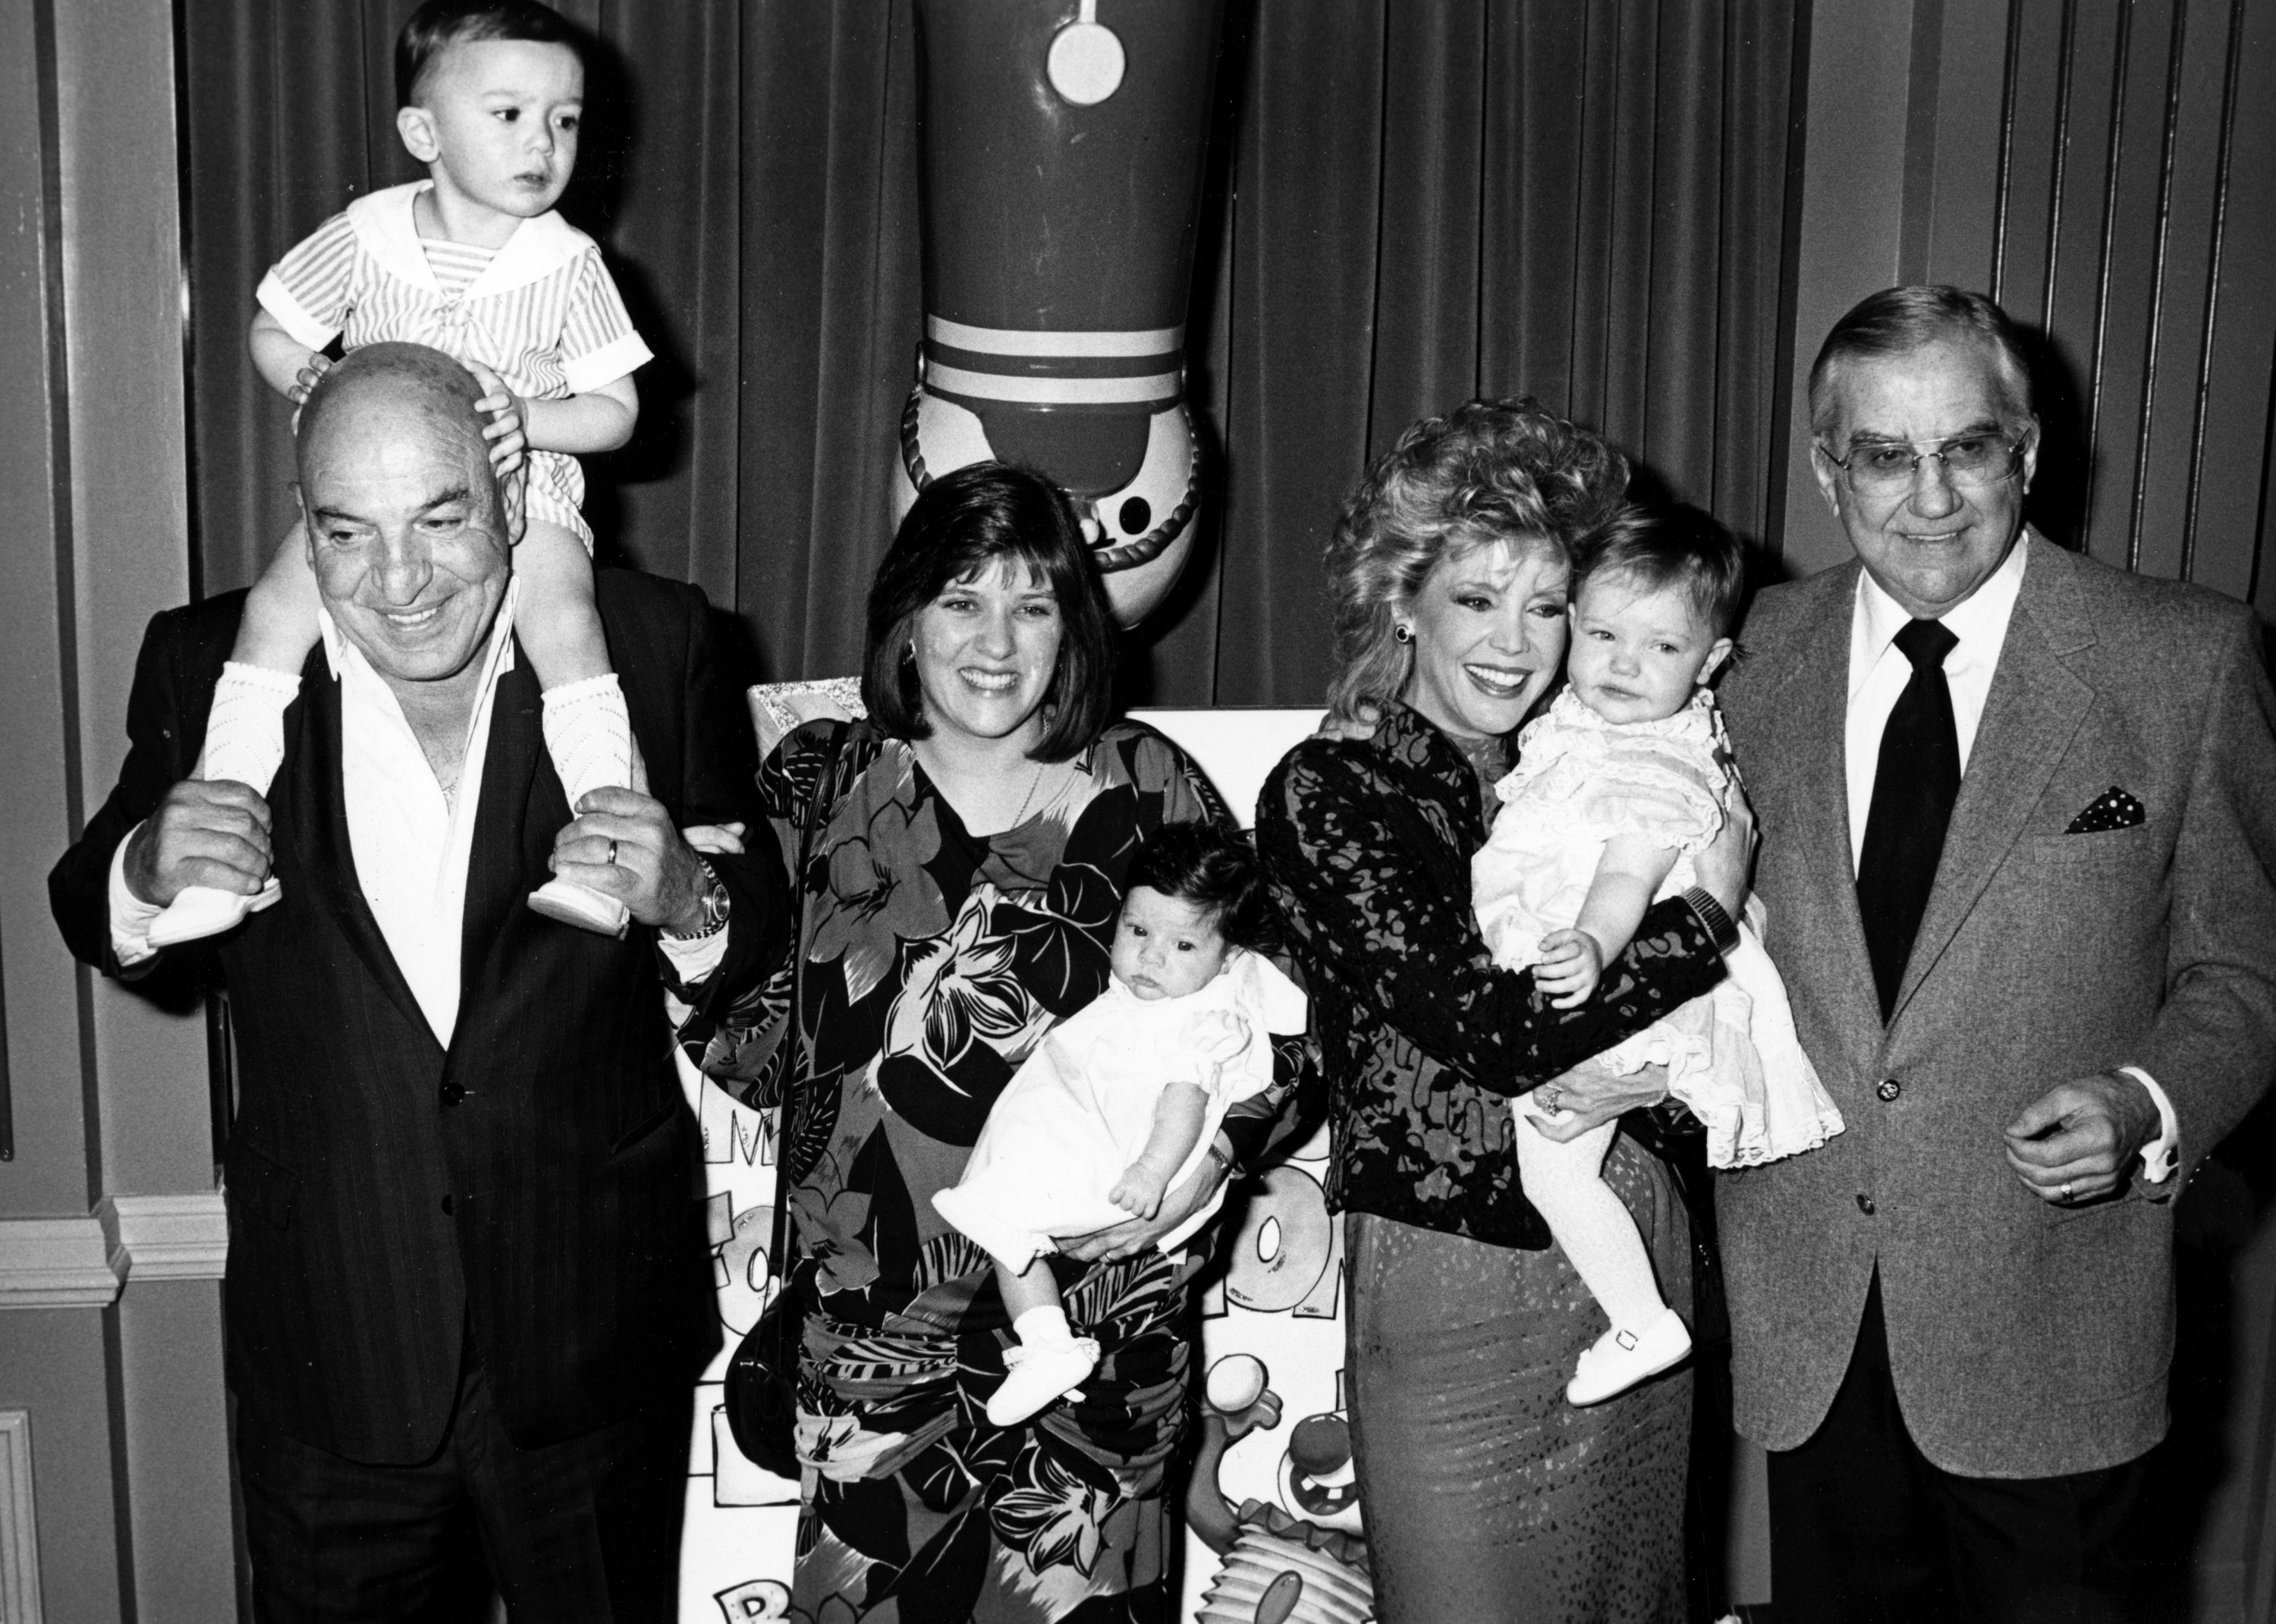 Telly Savalas, wife Julie Hovland, son Christian Savalas and daughter Ariana Savalas and Ed McMahon, wife Victoria McMahon and daughter Katherine McMahon attend Young Musicians Foundation Celebrity Mother-Daughter Fashion Show on March 26, 1987 | Photo: Getty Images